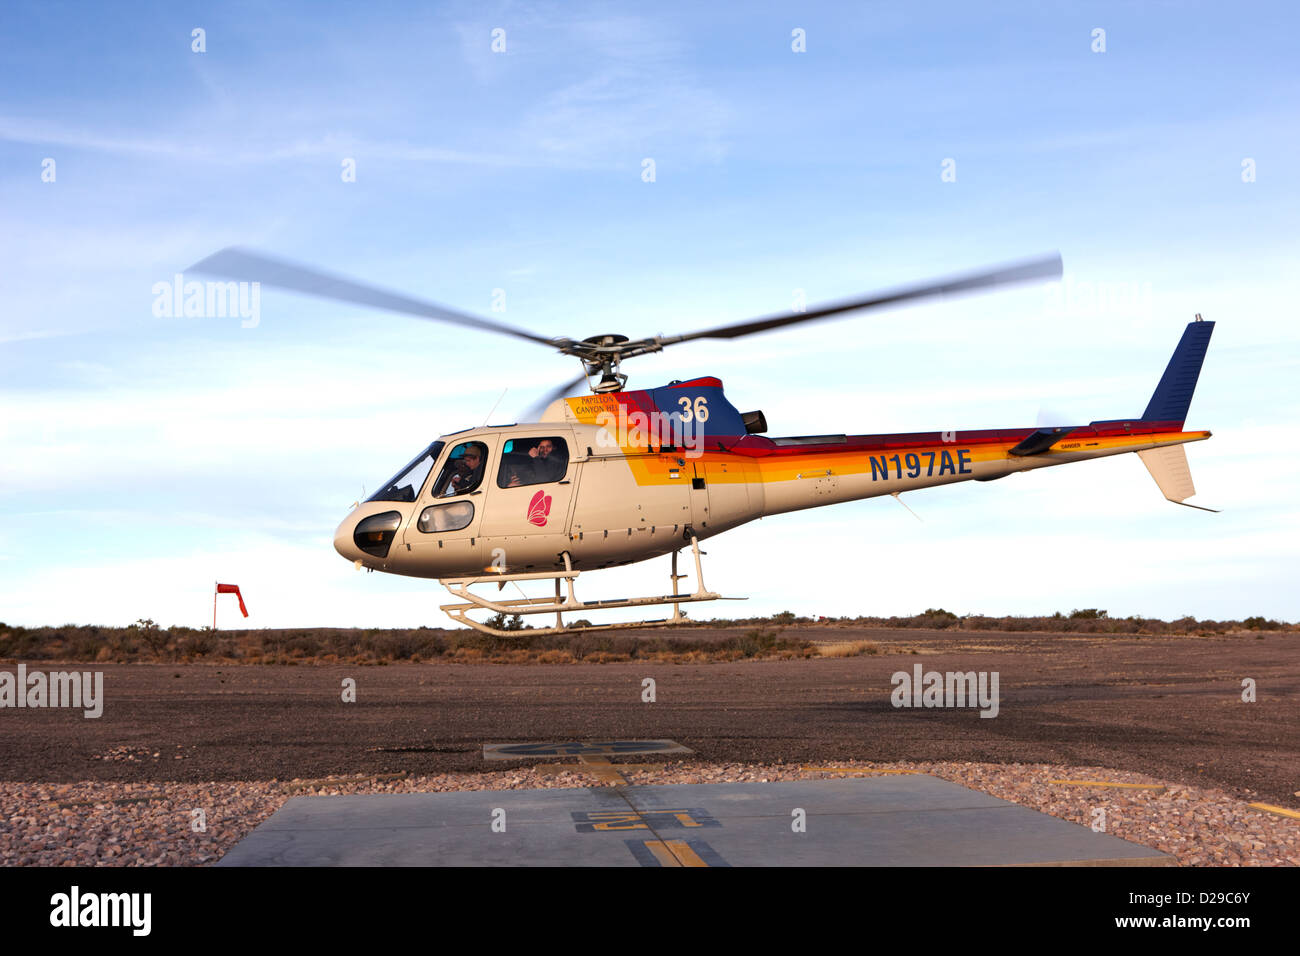 papillon helicopter tours full of passengers taking off from helipad Grand canyon west airport Arizona USA - Stock Image